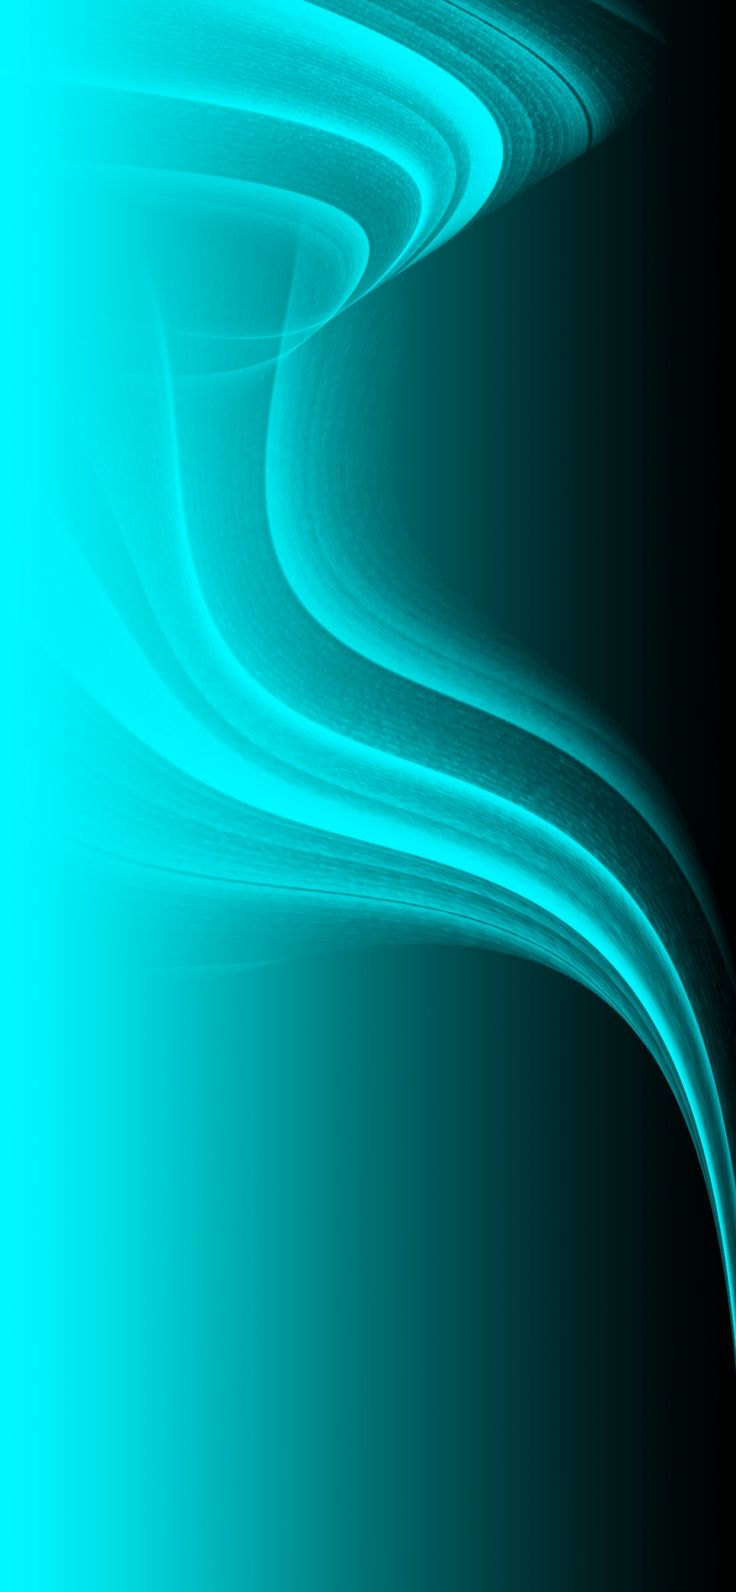 Abstract HD Wallpapers 532269249710985459 7